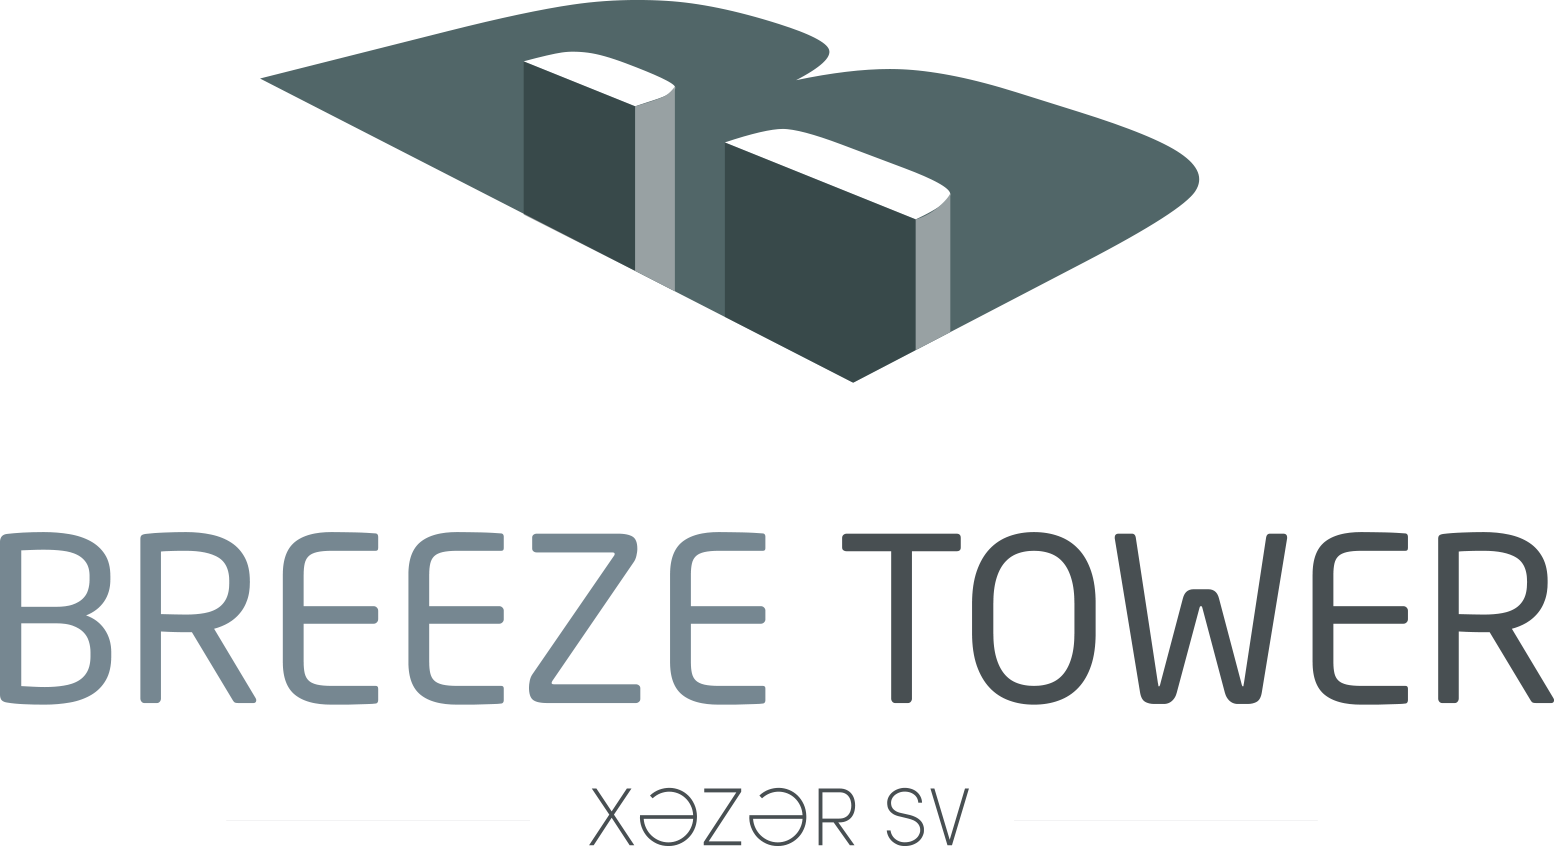 Breeze Tower